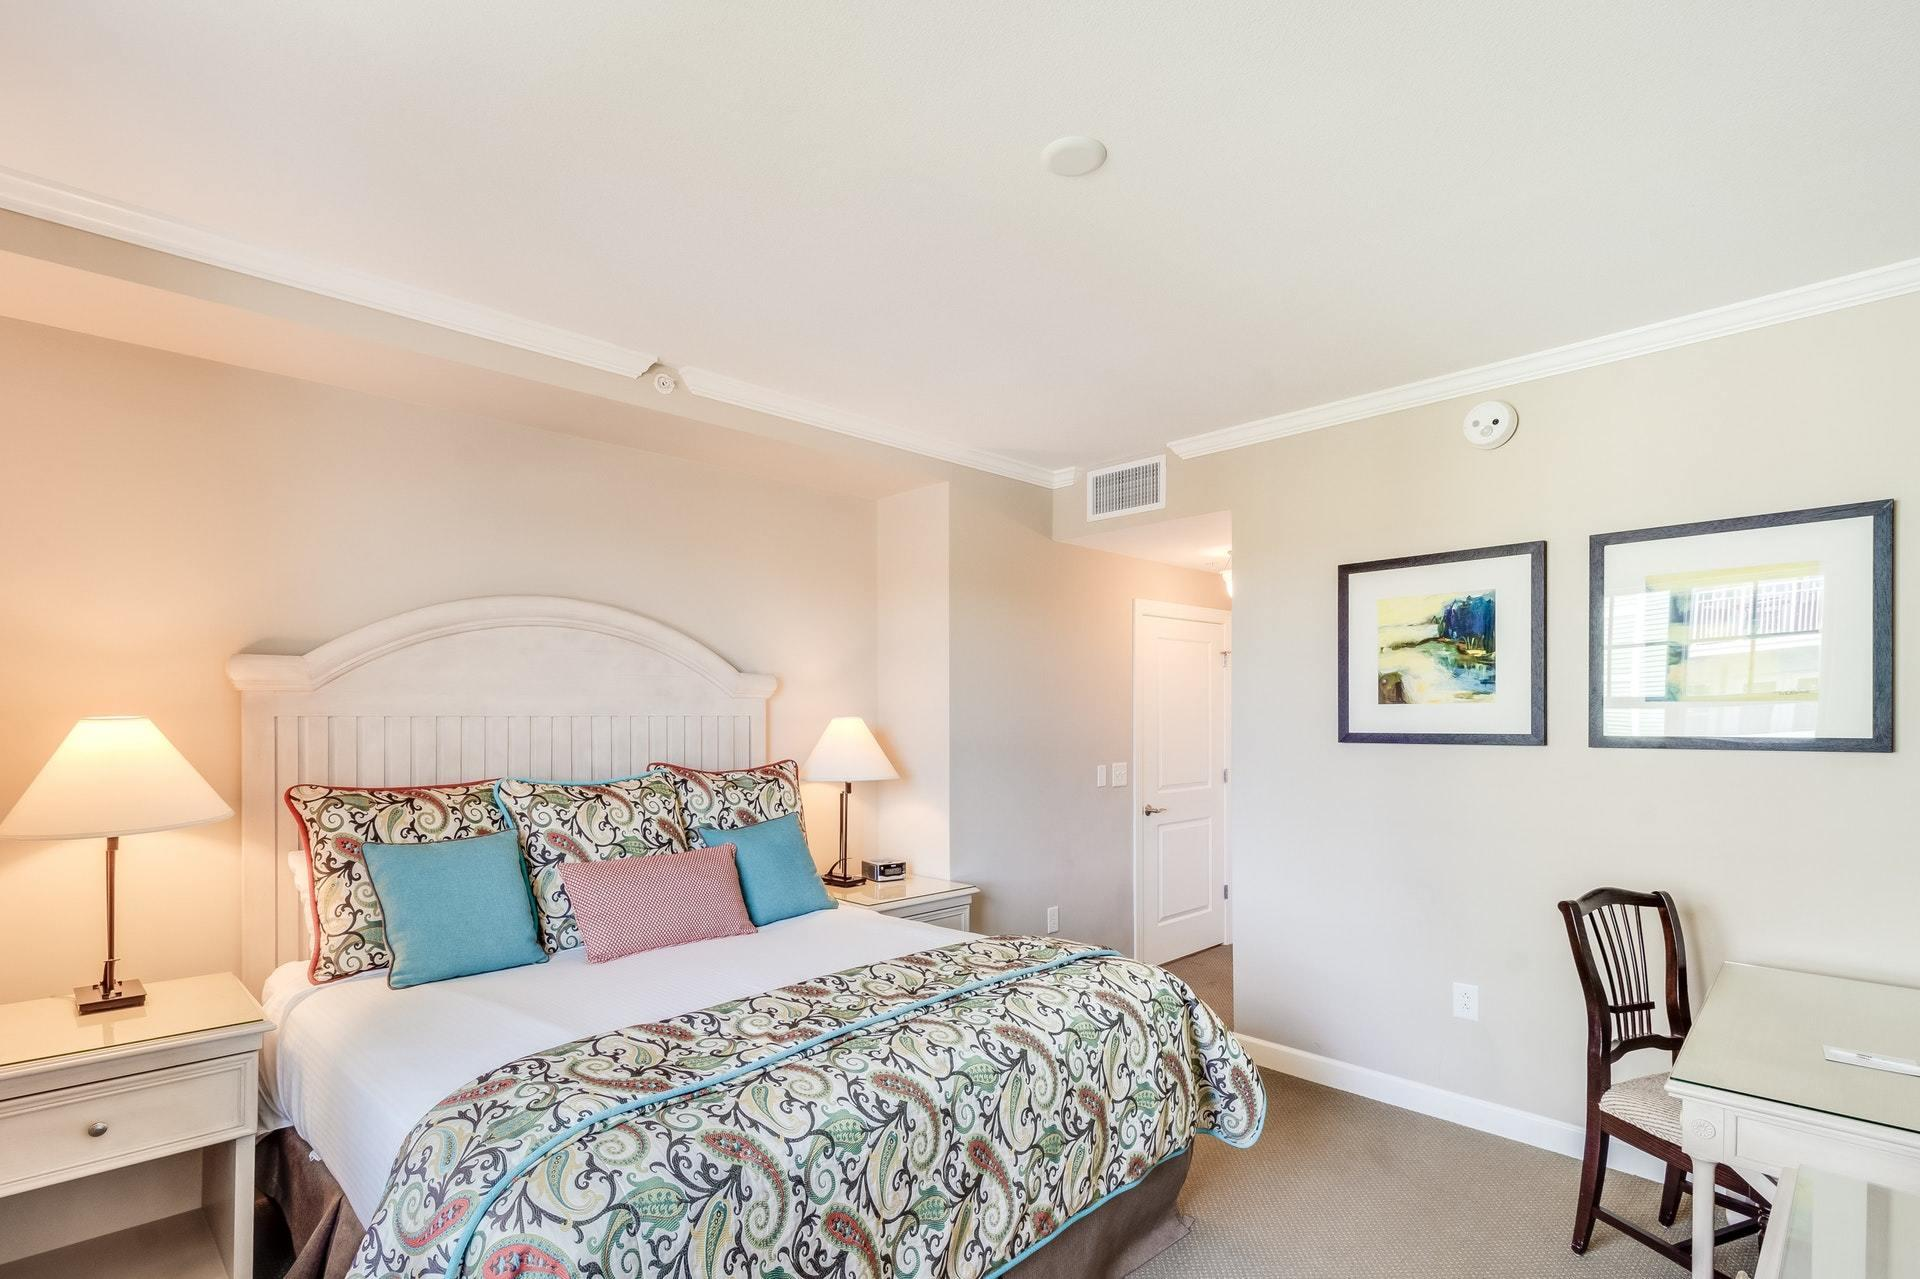 Wild Dunes Homes For Sale - 5800 Palmetto Drive, Isle of Palms, SC - 21